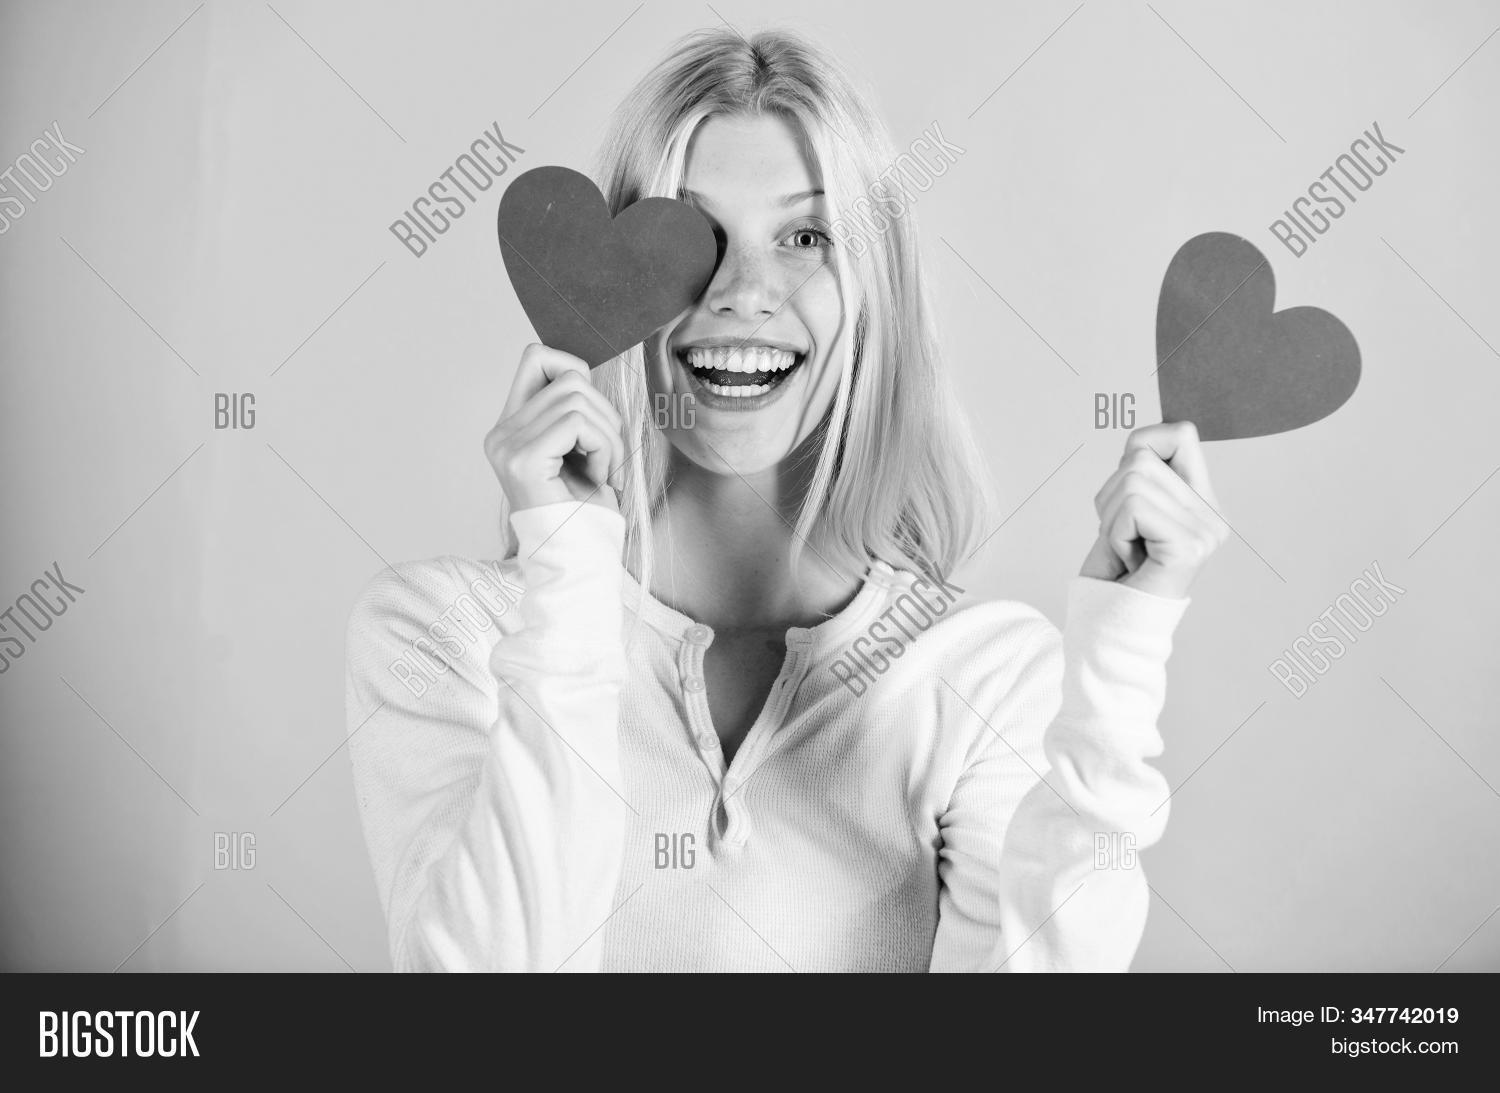 Girl Hold Heart Symbol Image Photo Free Trial Bigstock